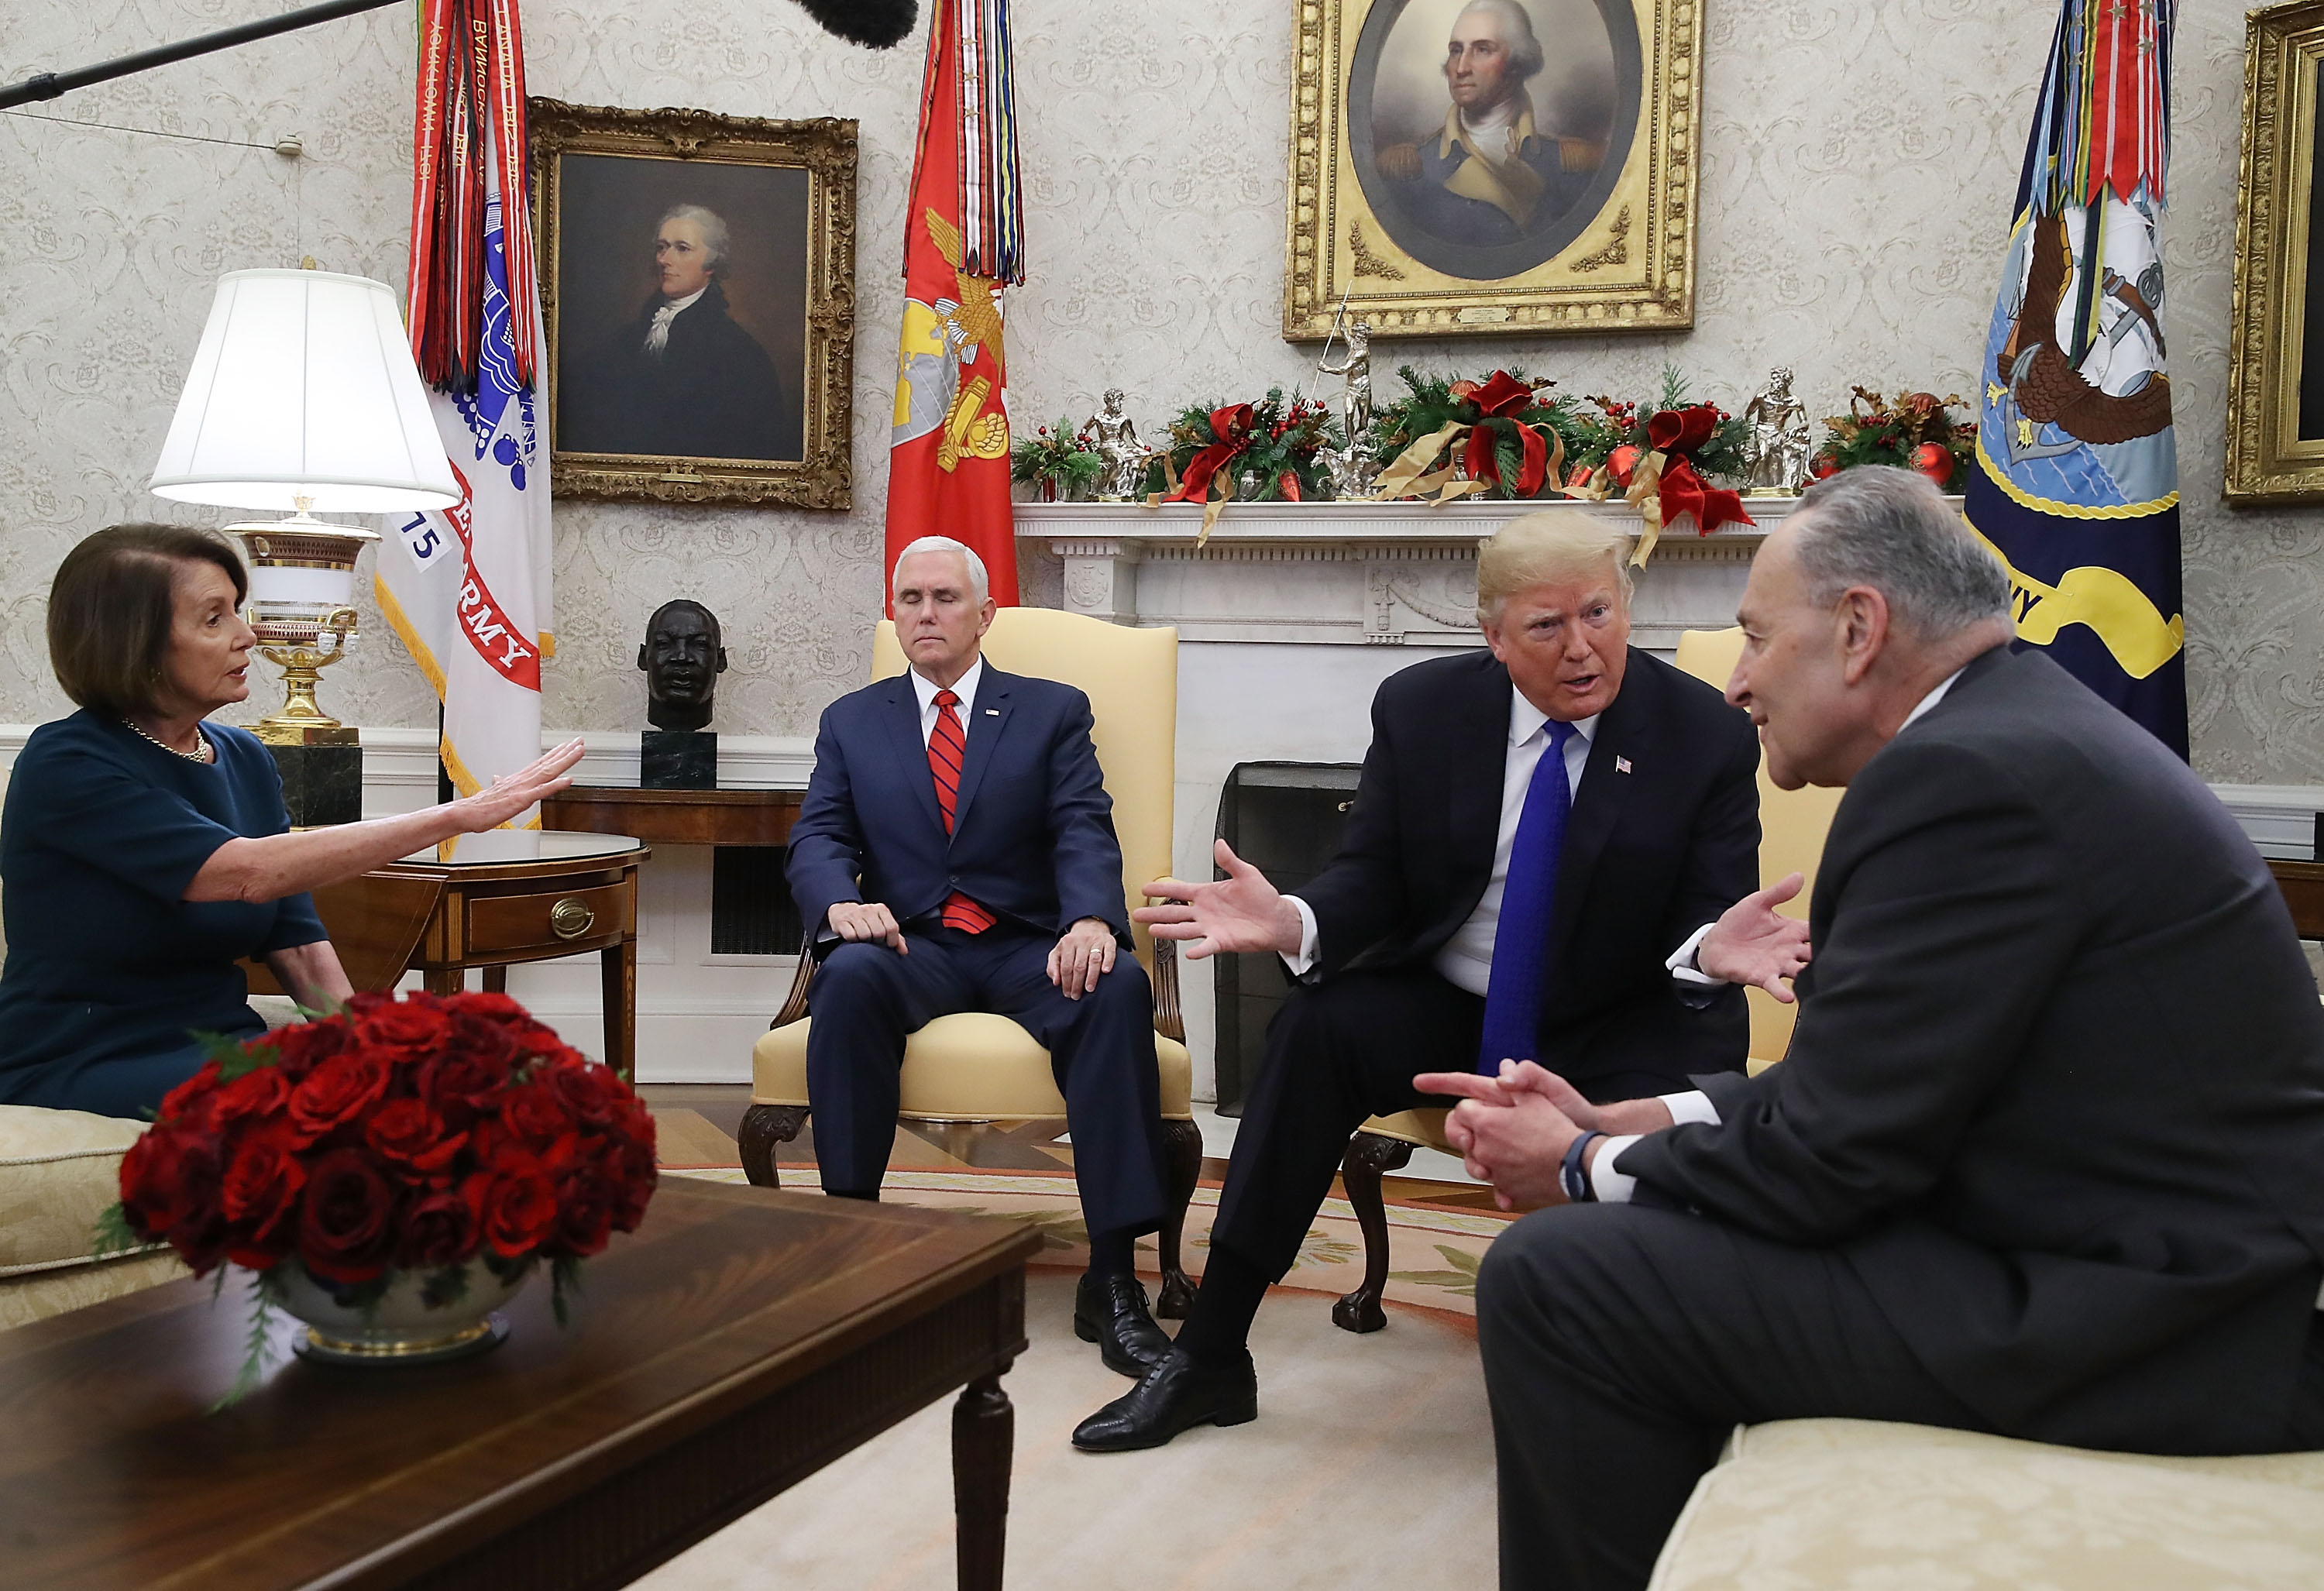 WASHINGTON, DC - DECEMBER 11: U.S. President Donald Trump (2R) talks about border security with Senate Minority Leader Chuck Schumer (D-NY) (R) and House Minority Leader Nancy Pelosi (D-CA) as Vice President Mike Pence sits nearby in the Oval Office on December 11, 2018 in Washington, DC. (Photo by Mark Wilson/Getty Images)